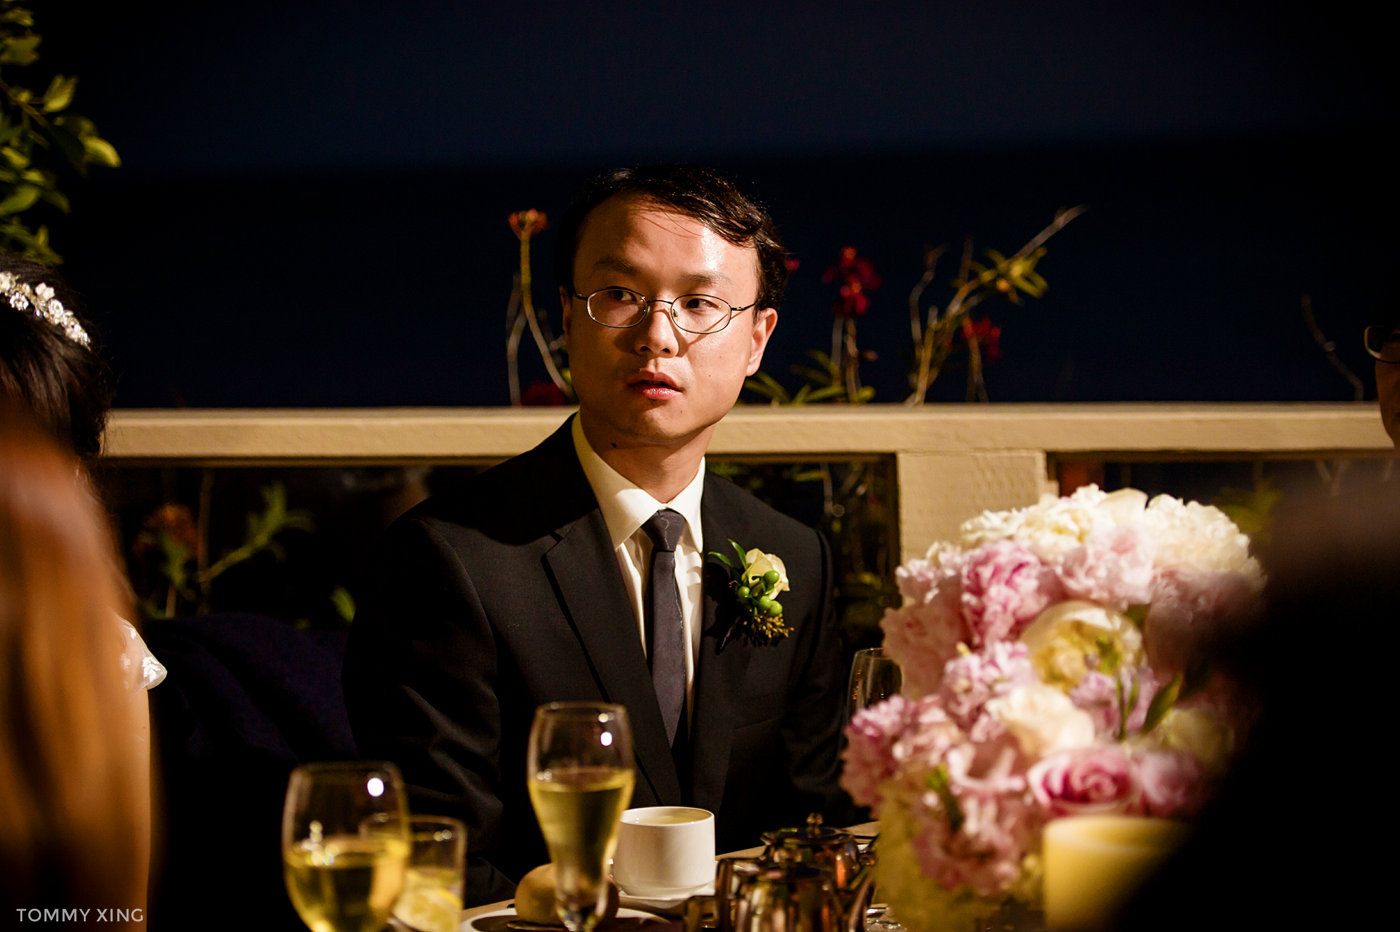 Qinglu Meng & Daozheng Chen Wedding Slideshow-208-E.JPG